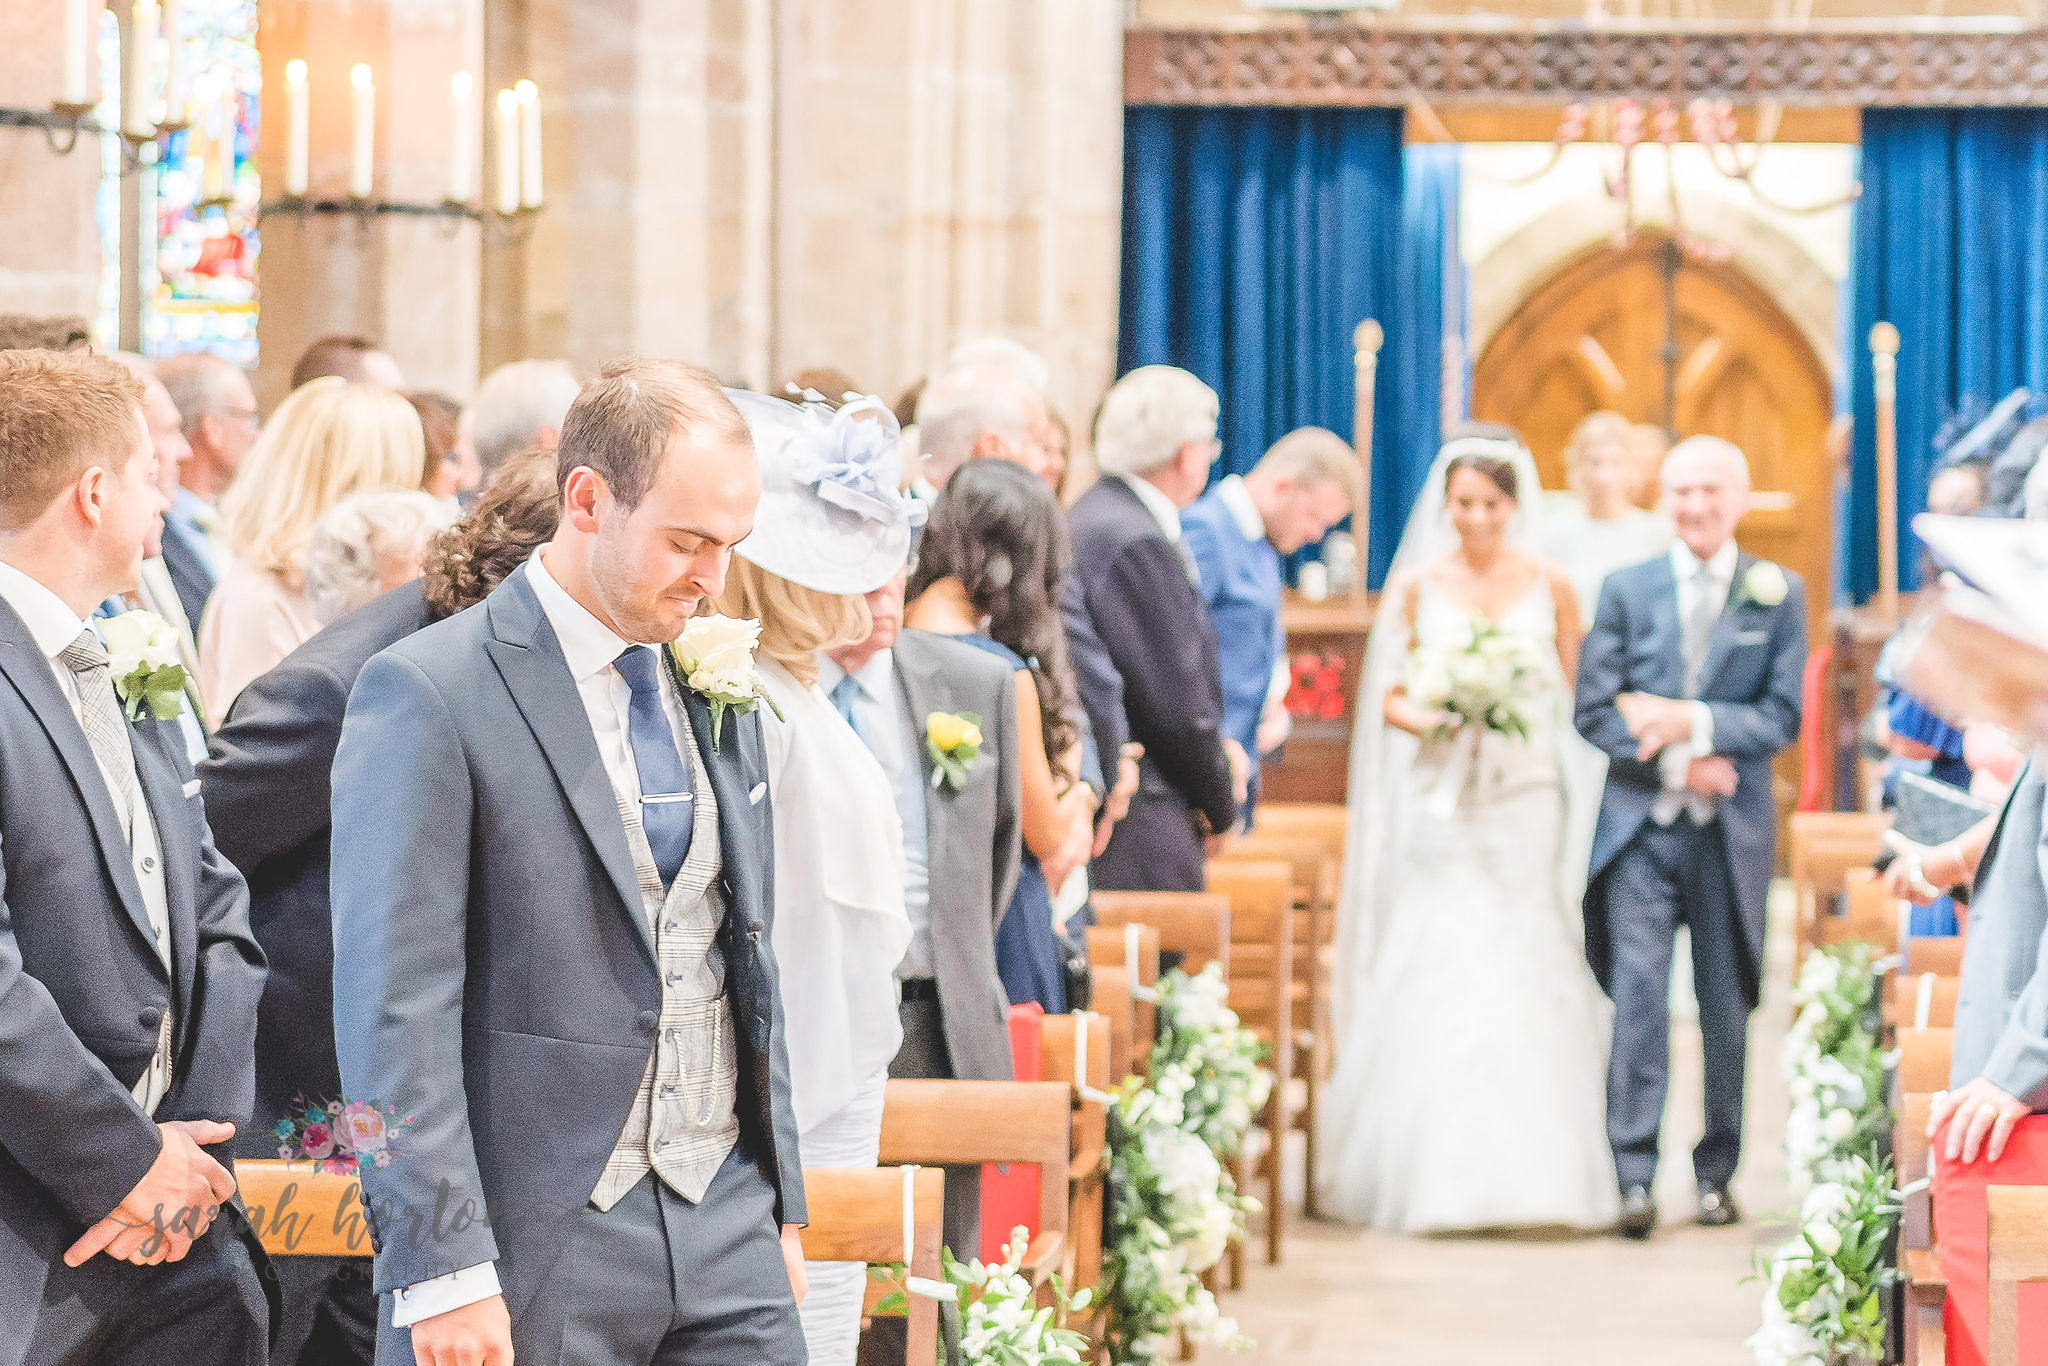 Light Airy Wedding Photography Knutsford Cheshire